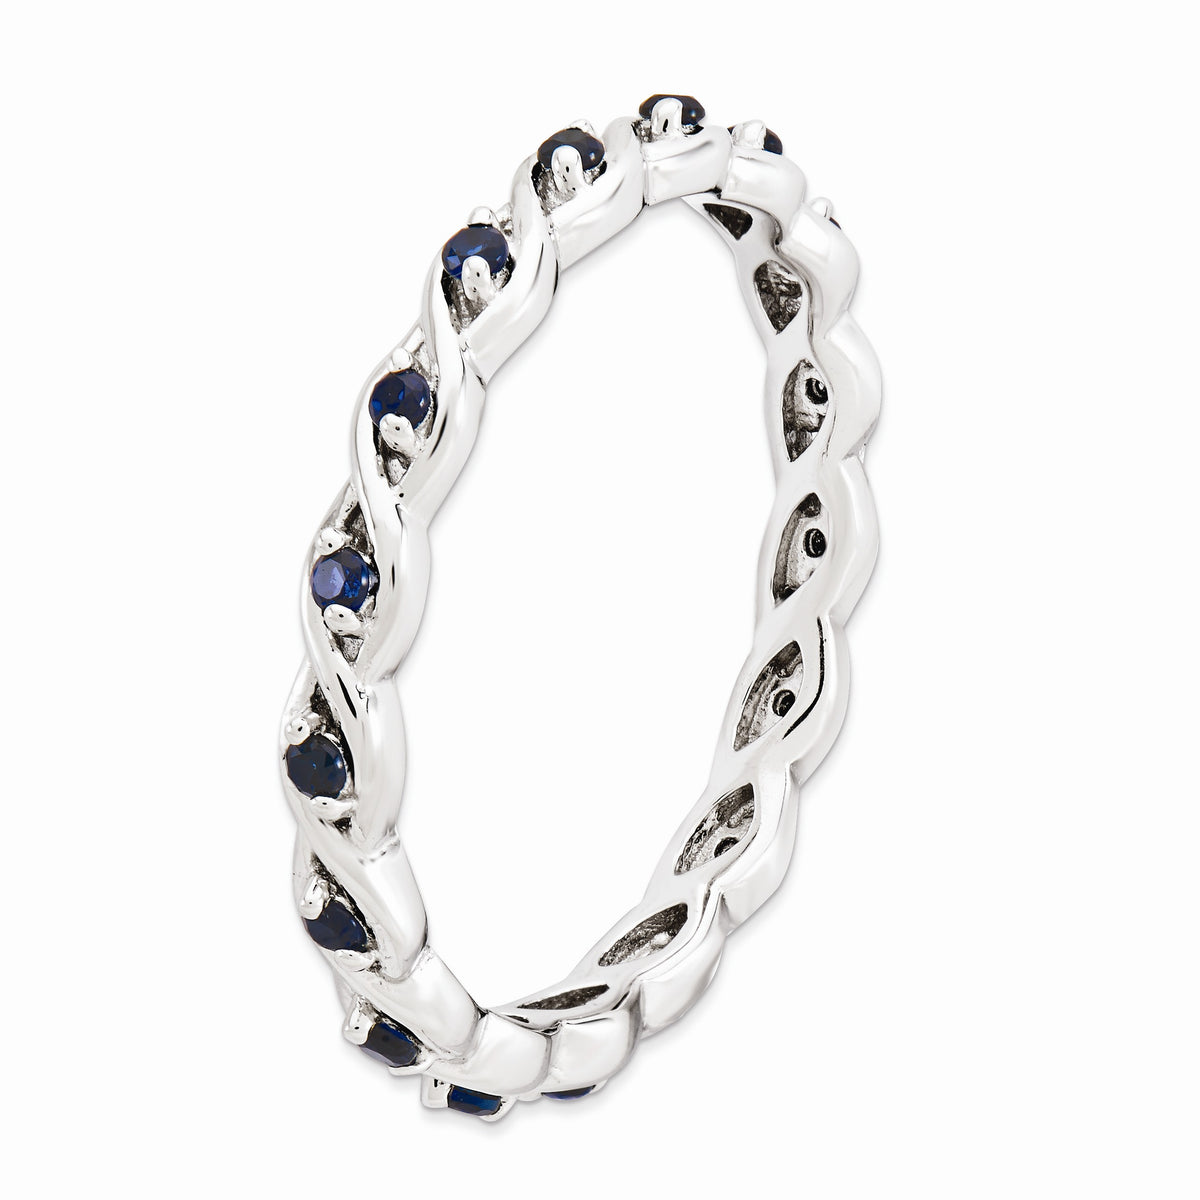 Alternate view of the 2.5mm Rhodium Sterling Silver Stackable Created Sapphire Twist Band by The Black Bow Jewelry Co.